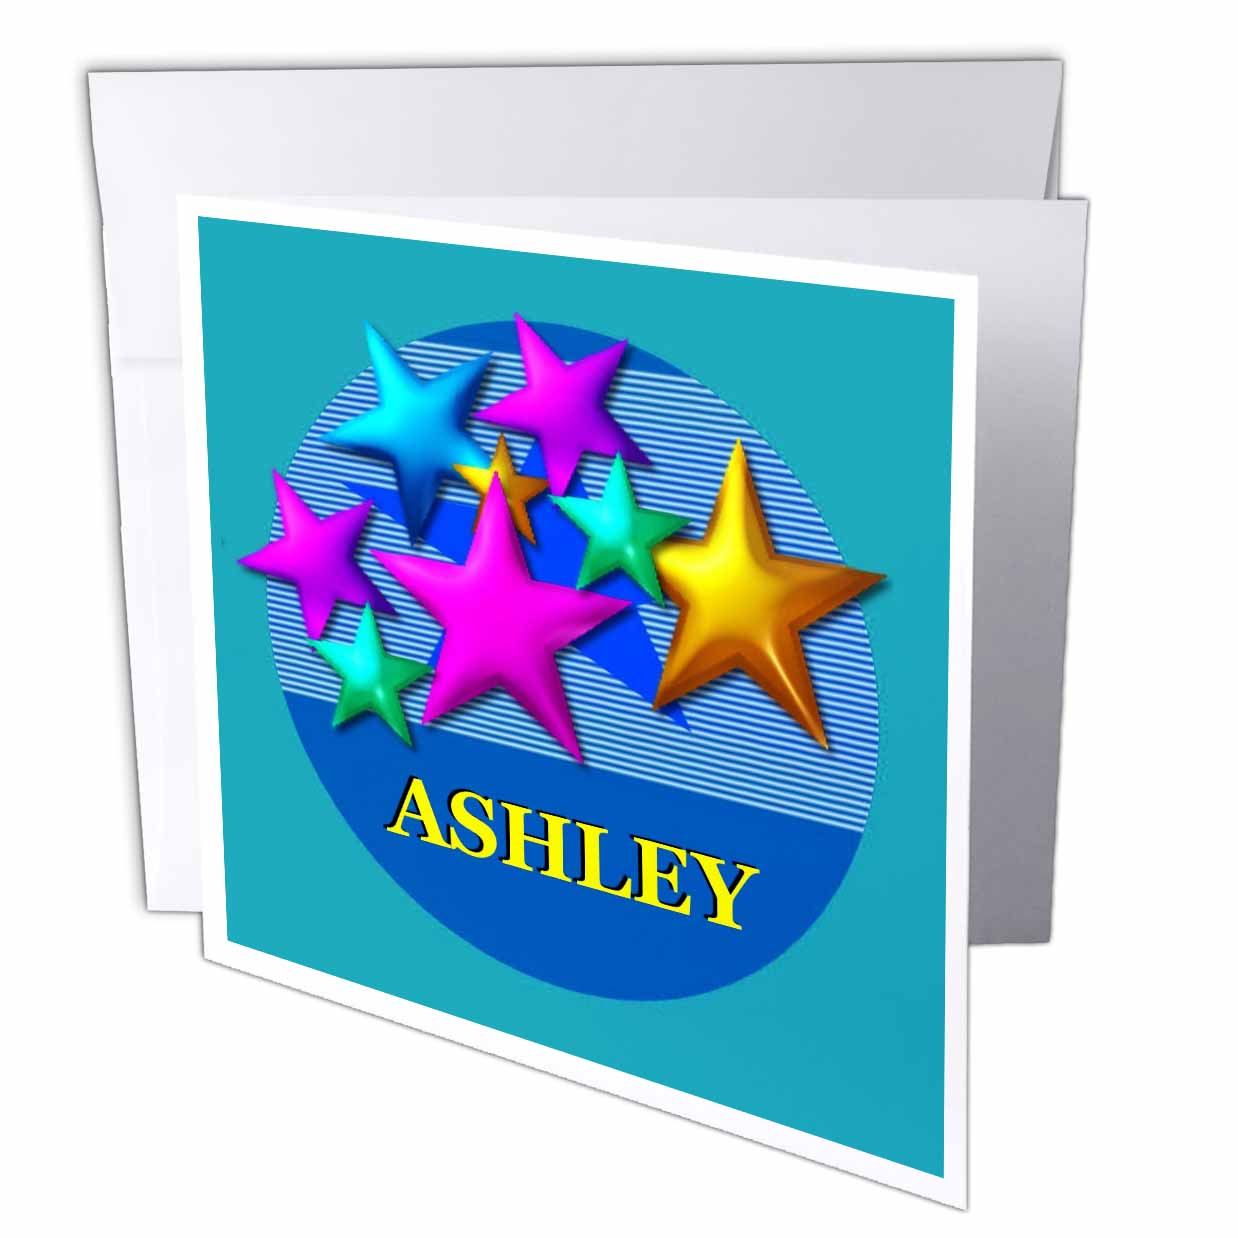 3dRose Vibrant colored stars on a blue background personalized with the name ASHLEY, Greeting Cards, 6 x 6 inches, set of 12